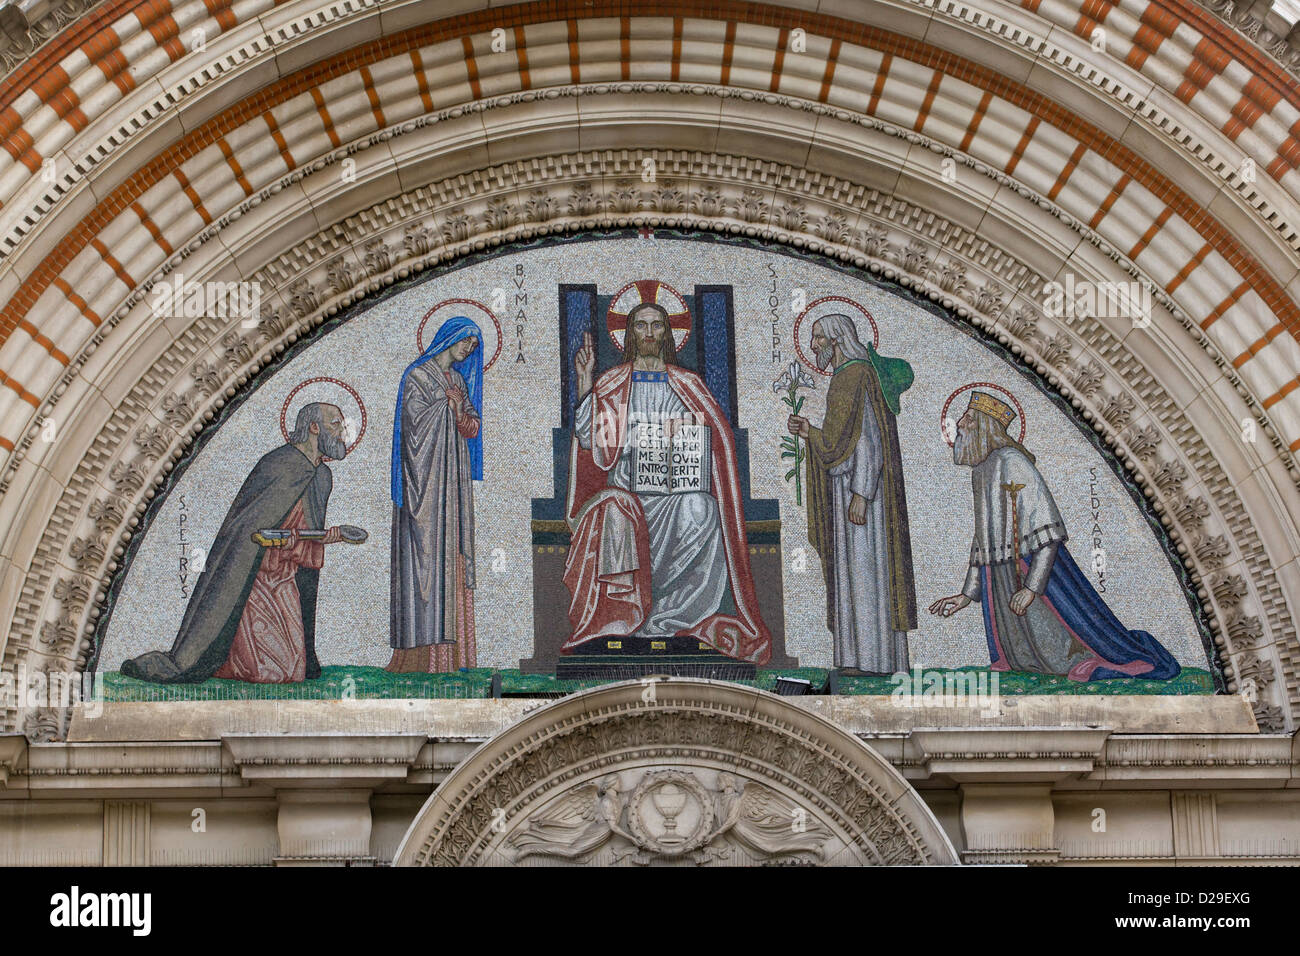 Westminster Cathedral in London - Stock Image